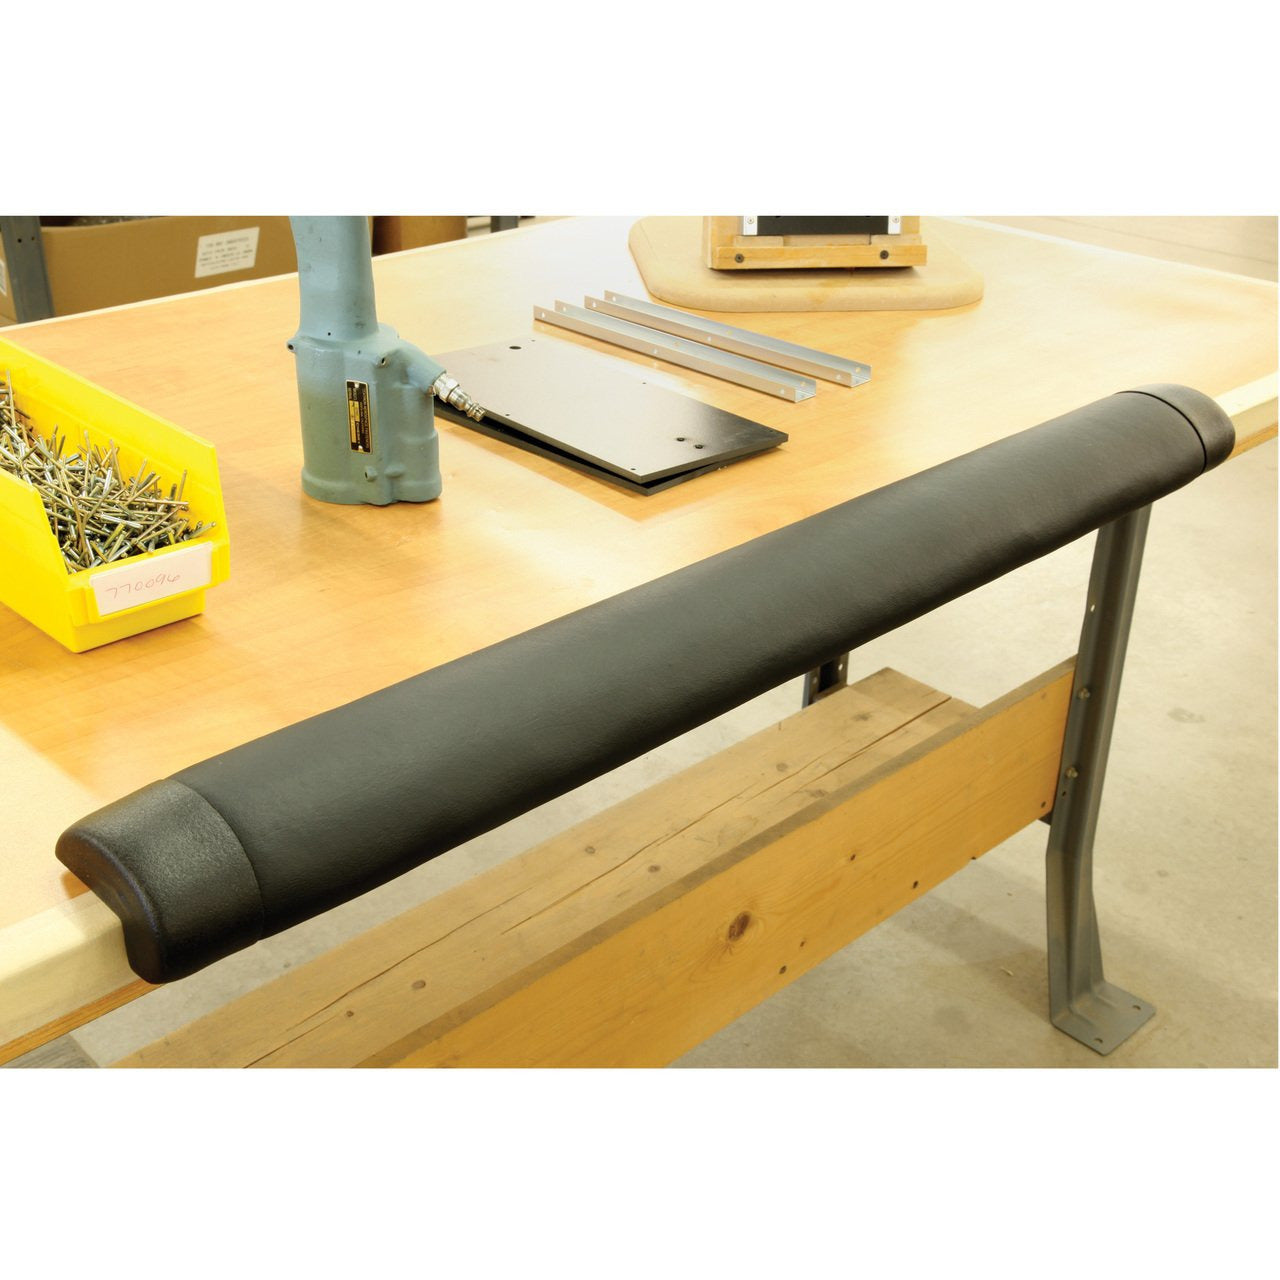 Stratis Industries Benchmate Arm Rest Support - 24""